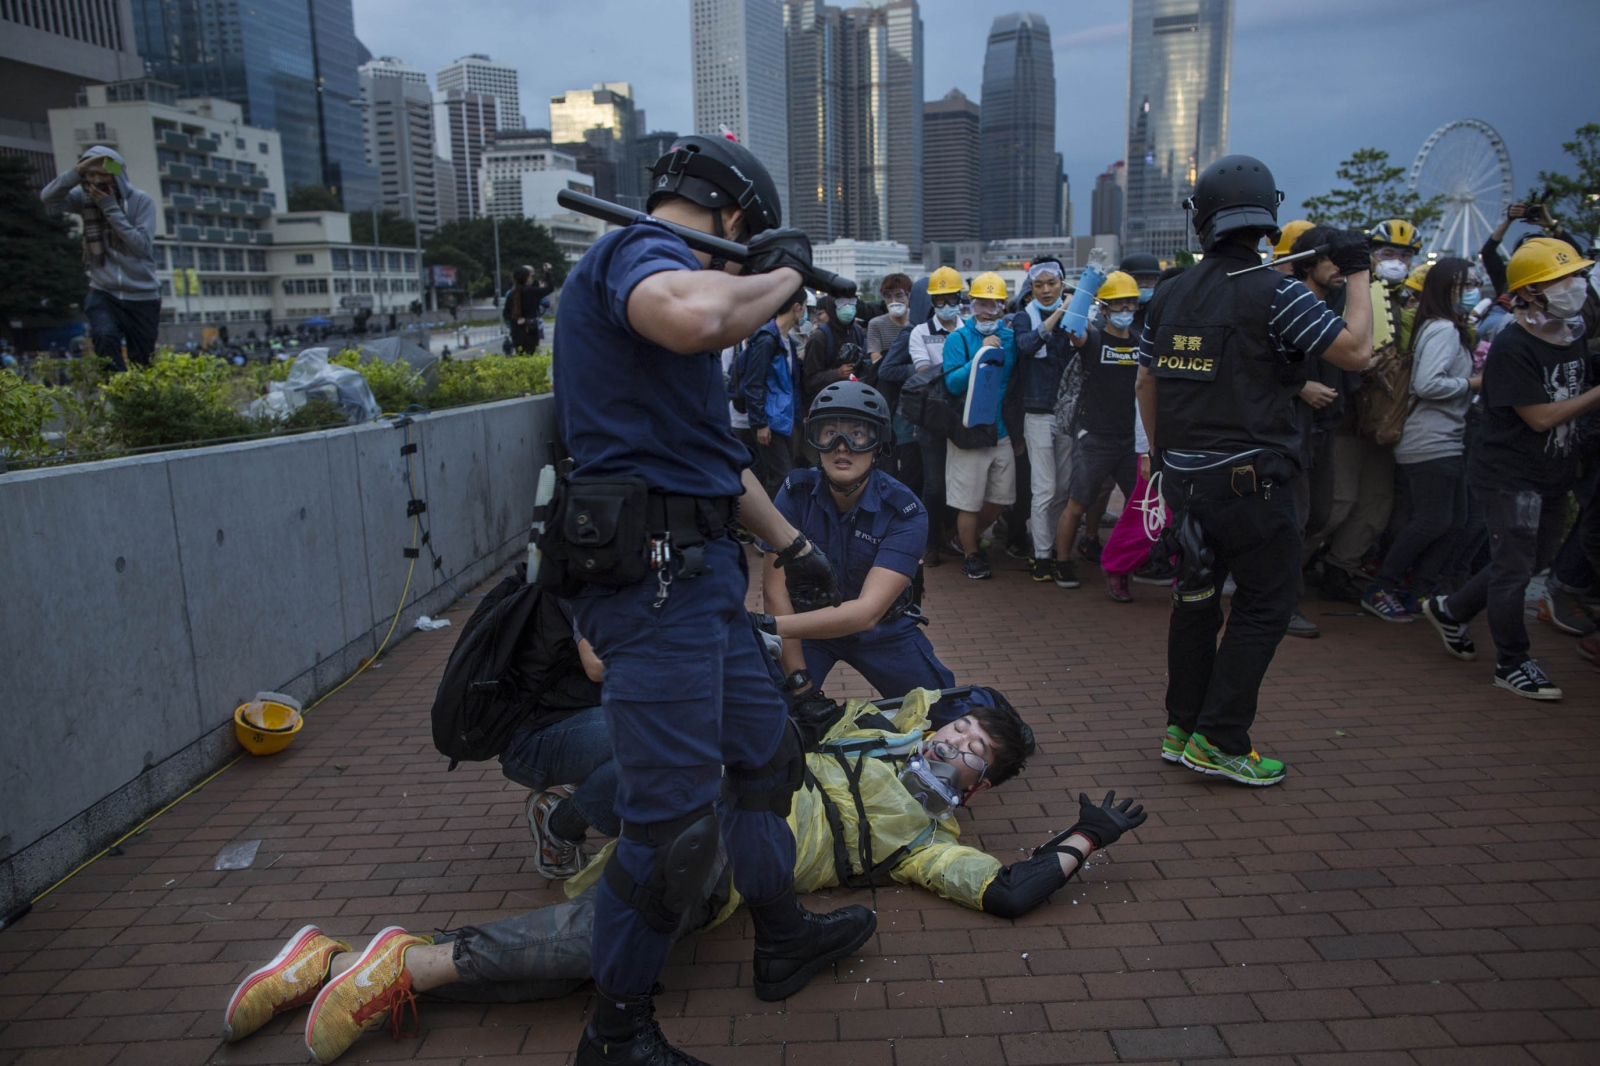 A protester is accosted by the police after being beaten with a baton following a violent night of scuffles with the police in the Admiralty district of Hong Kong, in the early hours of December 1, 2014. Protestors attempted to retake and occupy a major road that had earlier been cleared by the police weeks earlier.